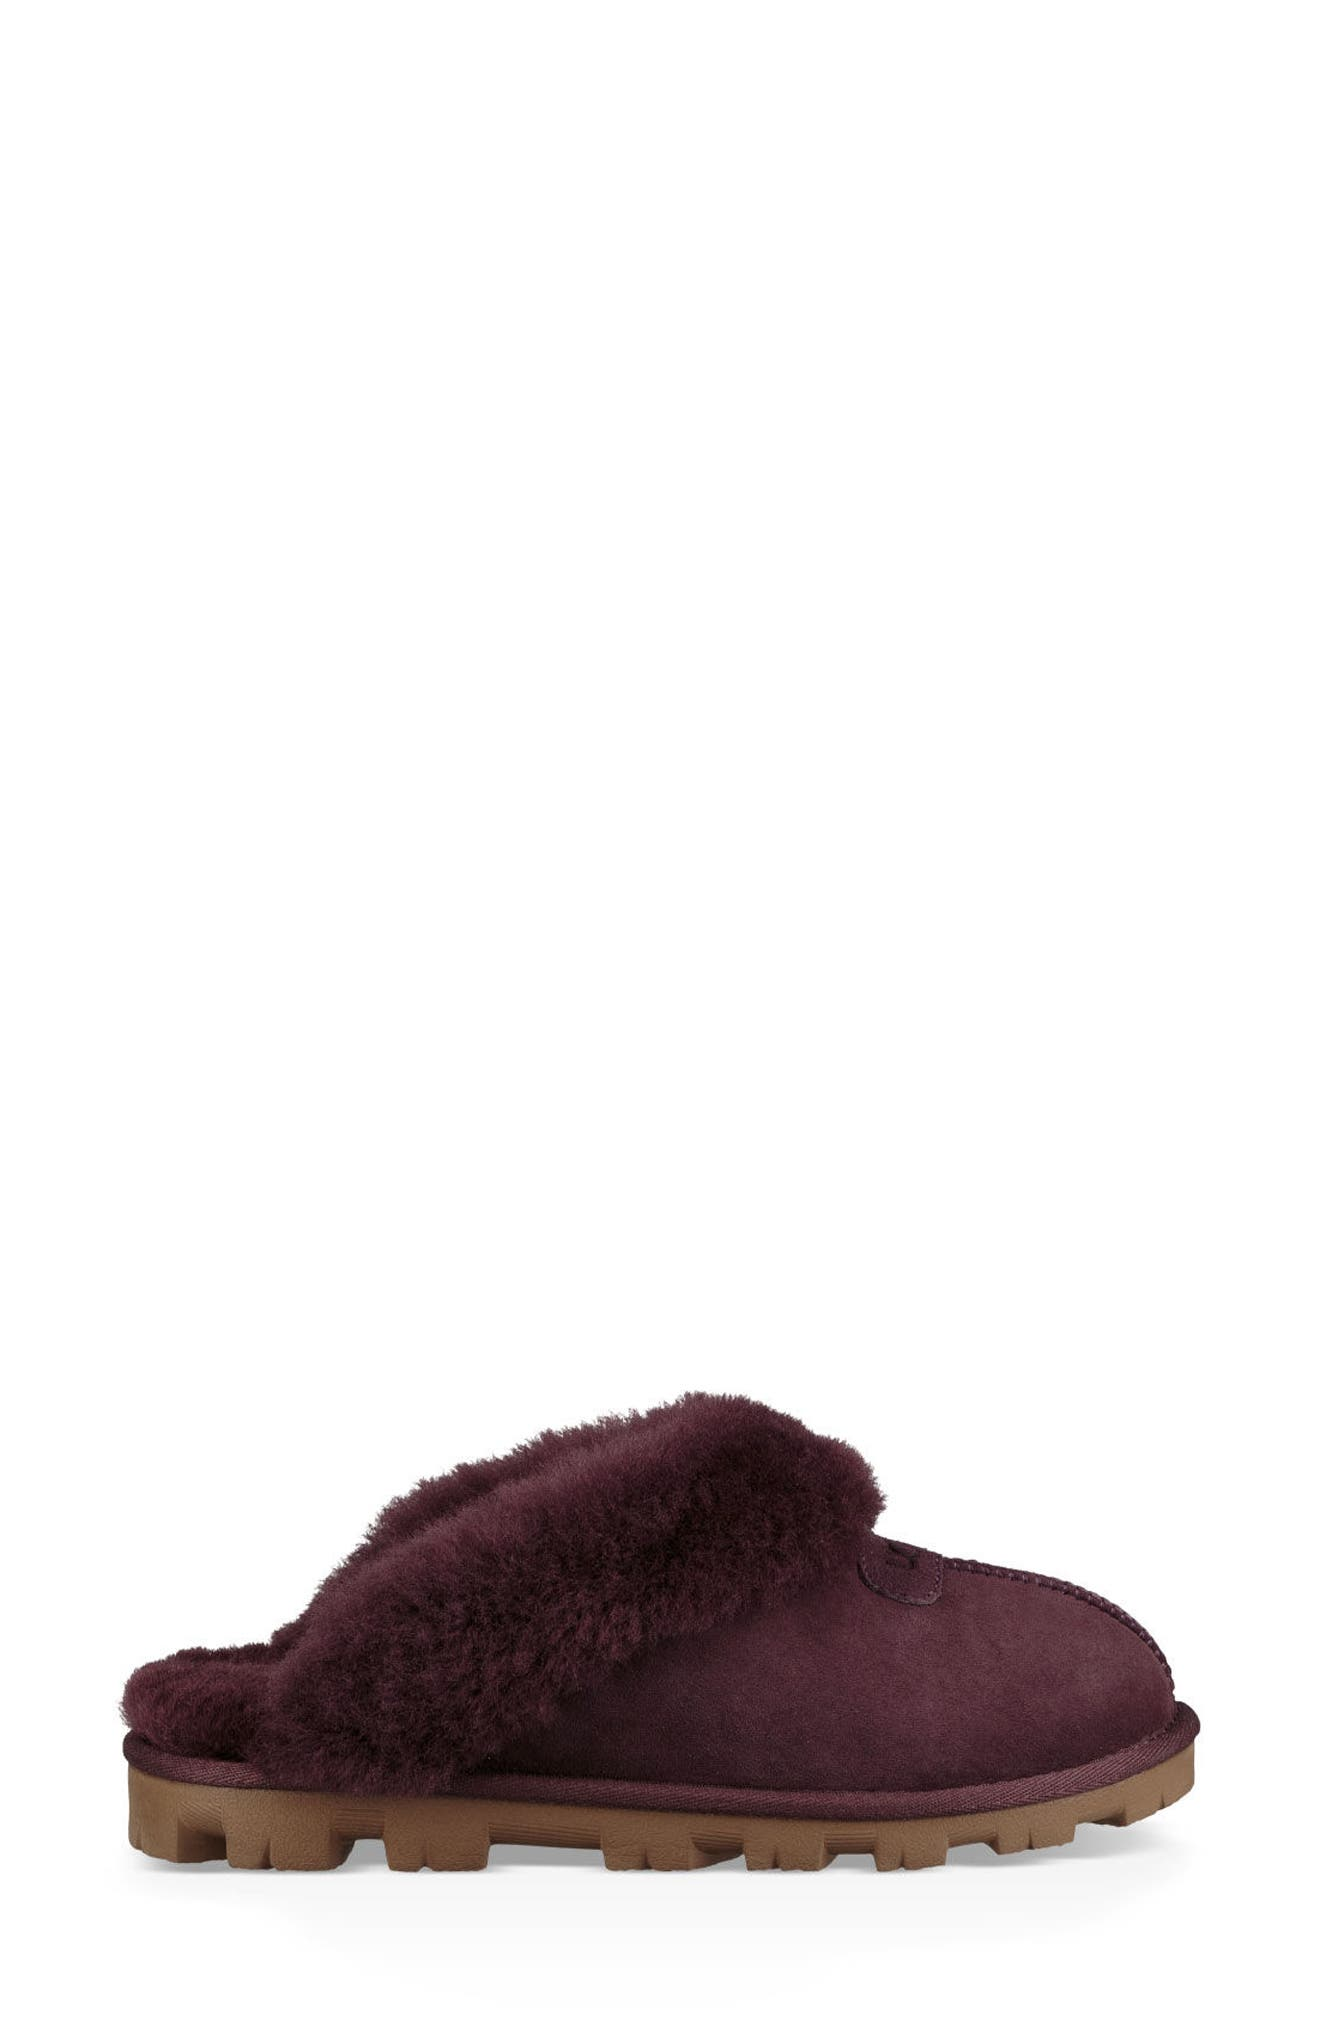 ,                             Genuine Shearling Slipper,                             Alternate thumbnail 65, color,                             553